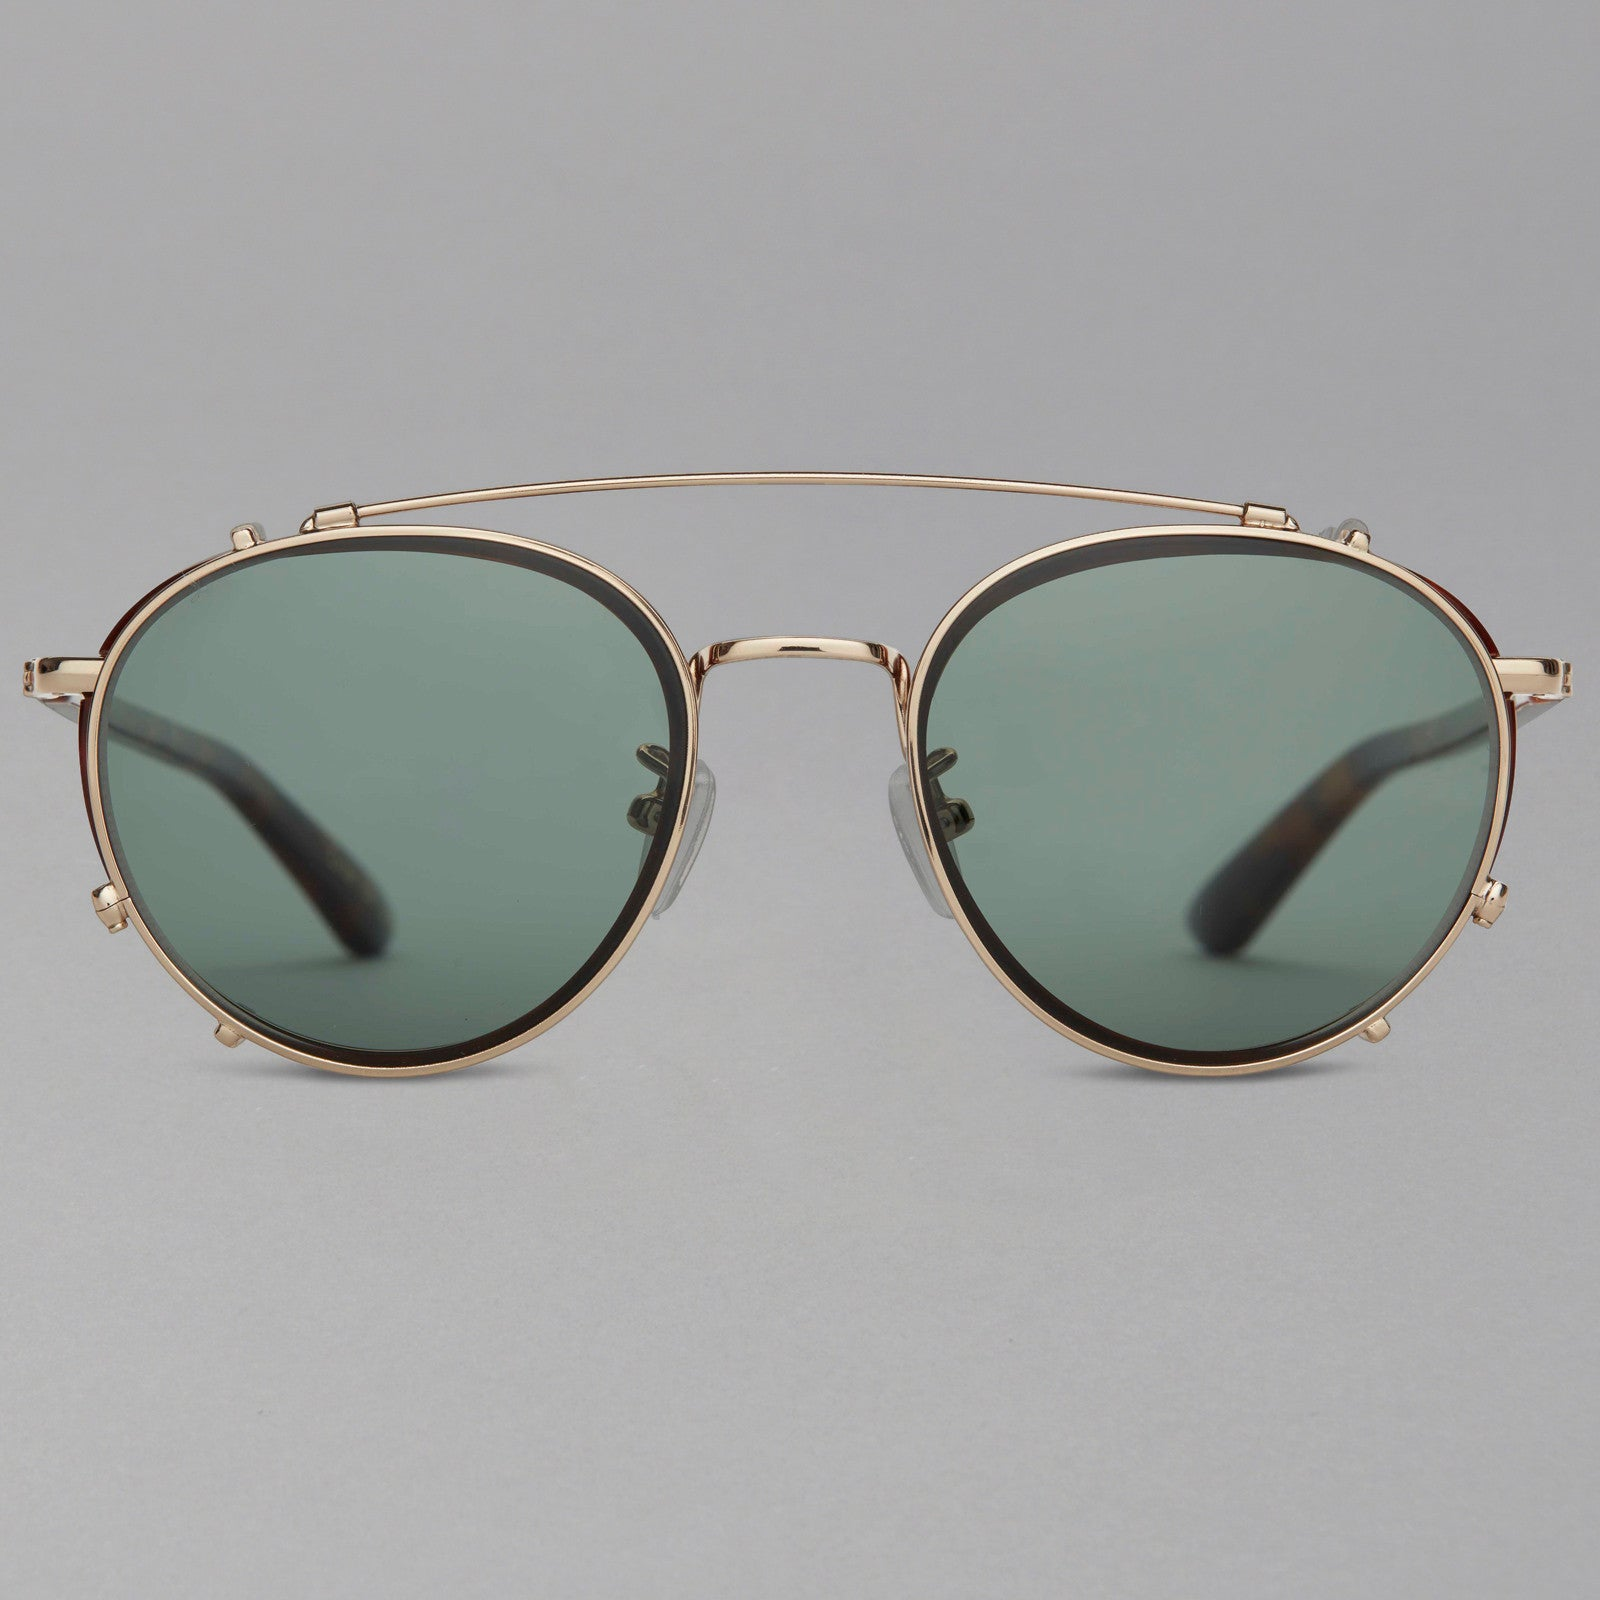 TOMS - TOMS x The Hill-Side Hynes Glasses, Tortoiseshell Acetate -